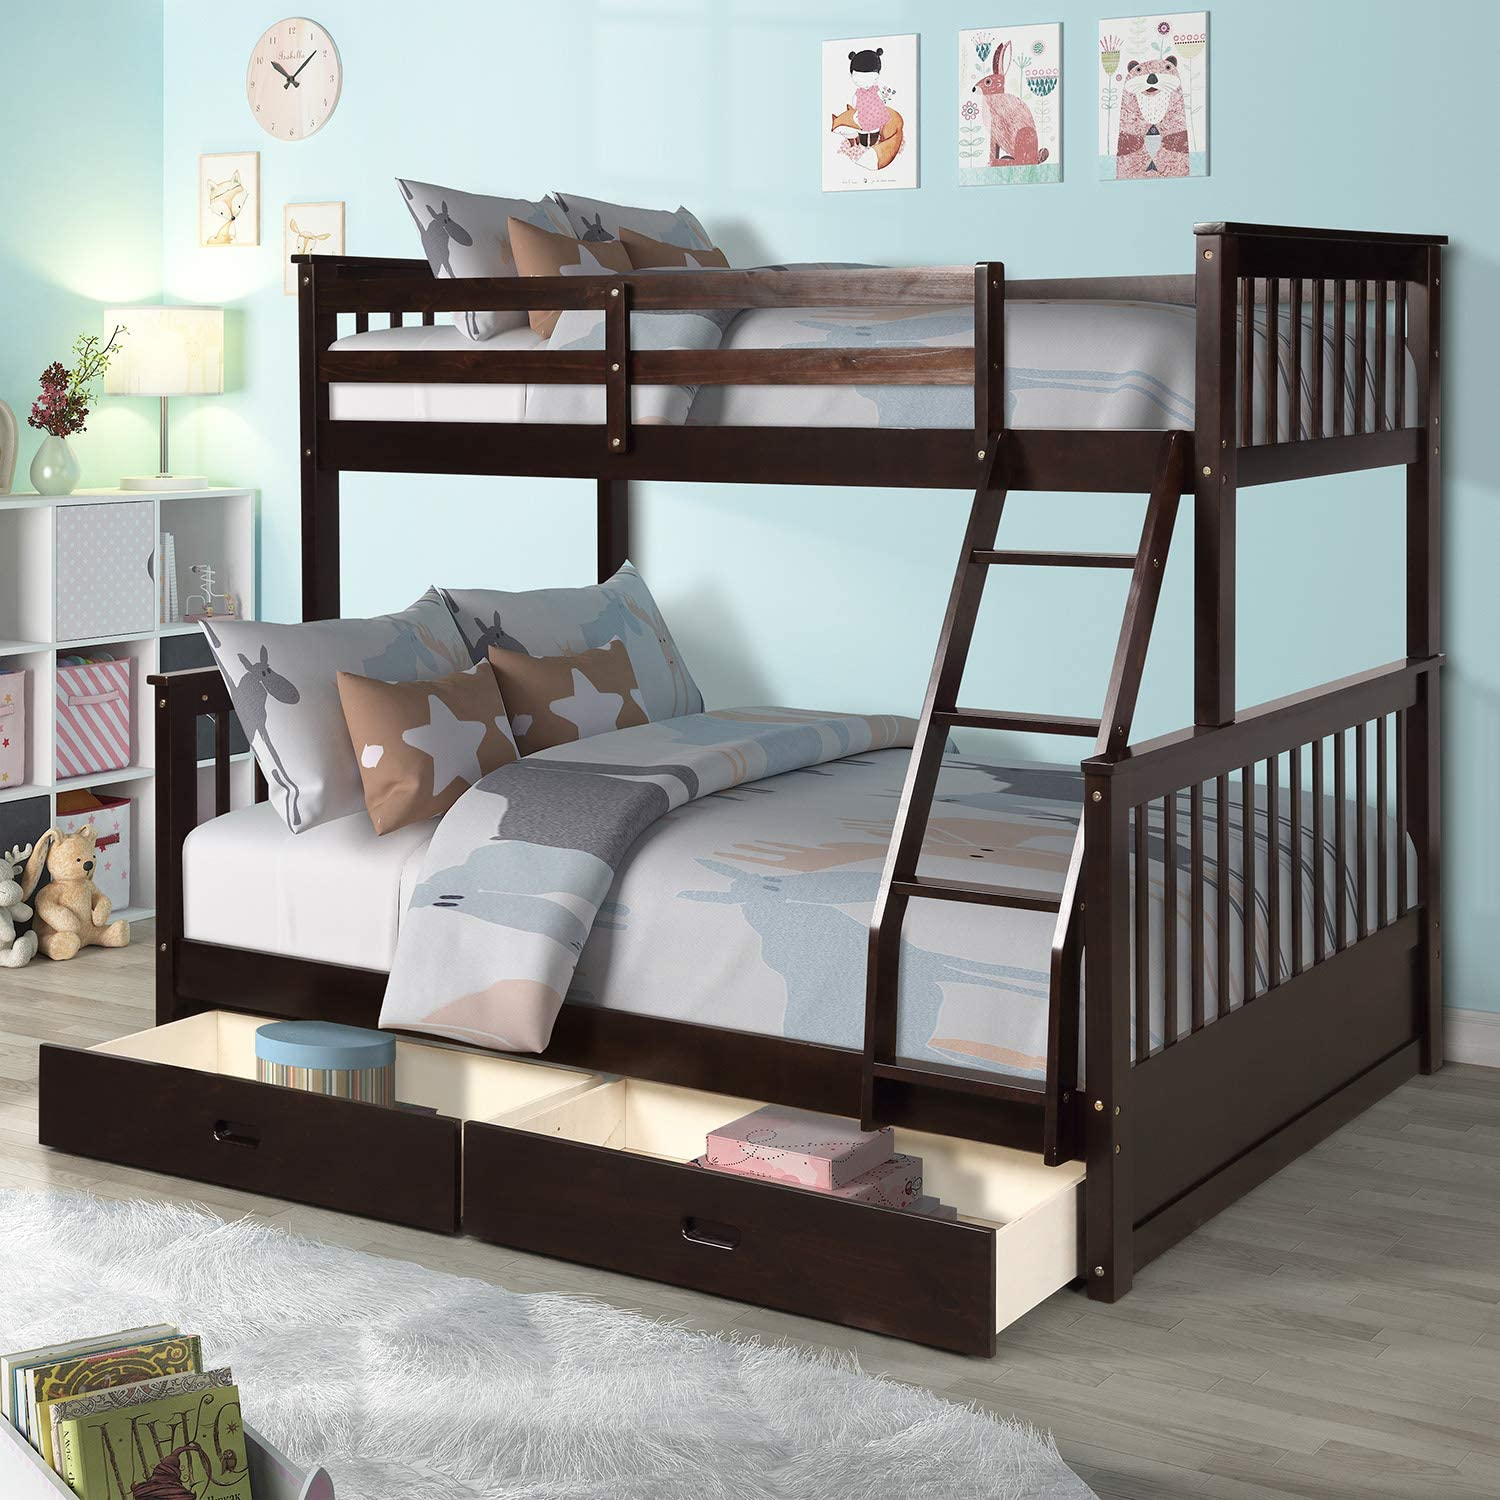 Amazon Com Merax Twin Over Full Bunk Bed Solid Wood Bunk Bed With Removable Ladders And Two Storage Drawers Espresso Kitchen Dining